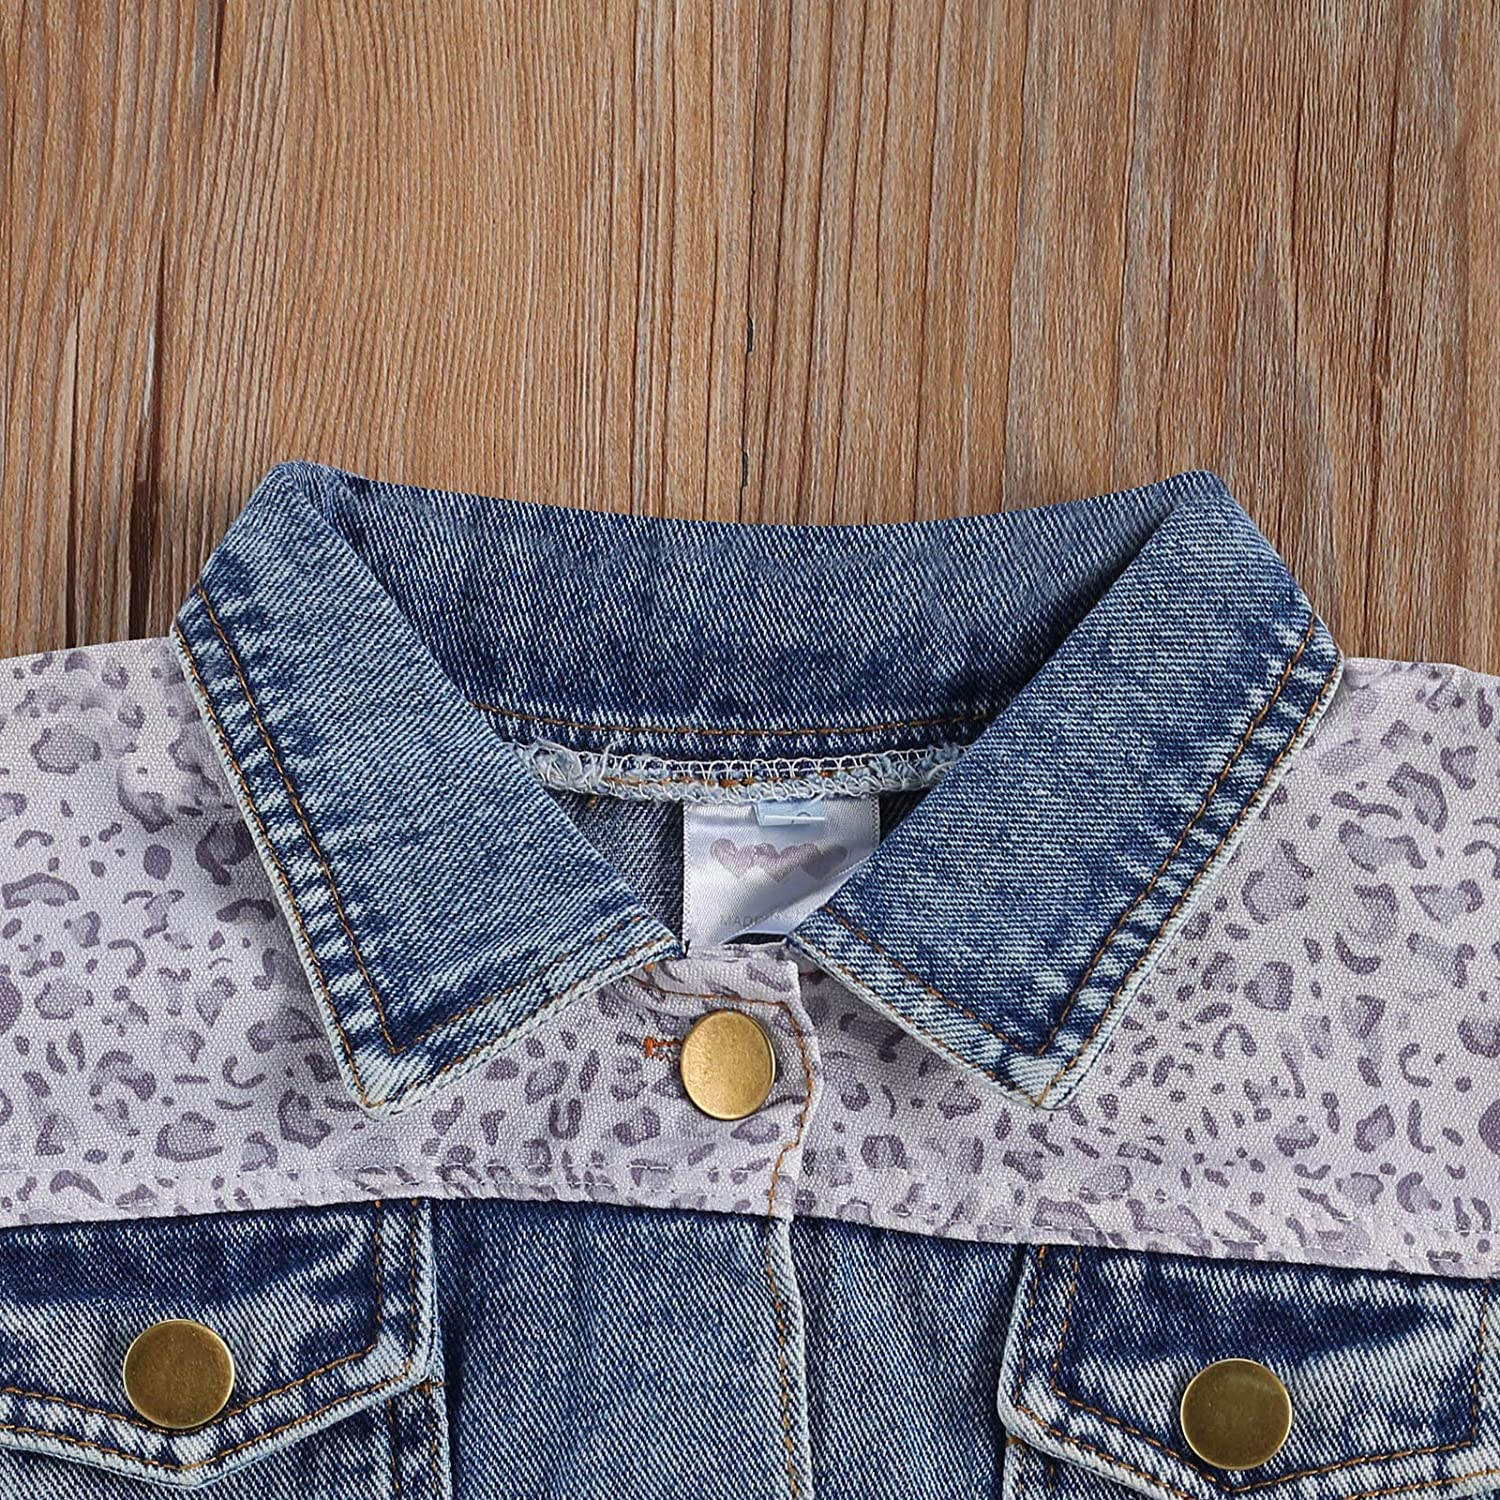 JIUJIUMI Baby and Toddler Girls Denim Jacket Long Sleeve Leopard Patchwork Button Down Jean Coat Fall Winter Clothes Outfit